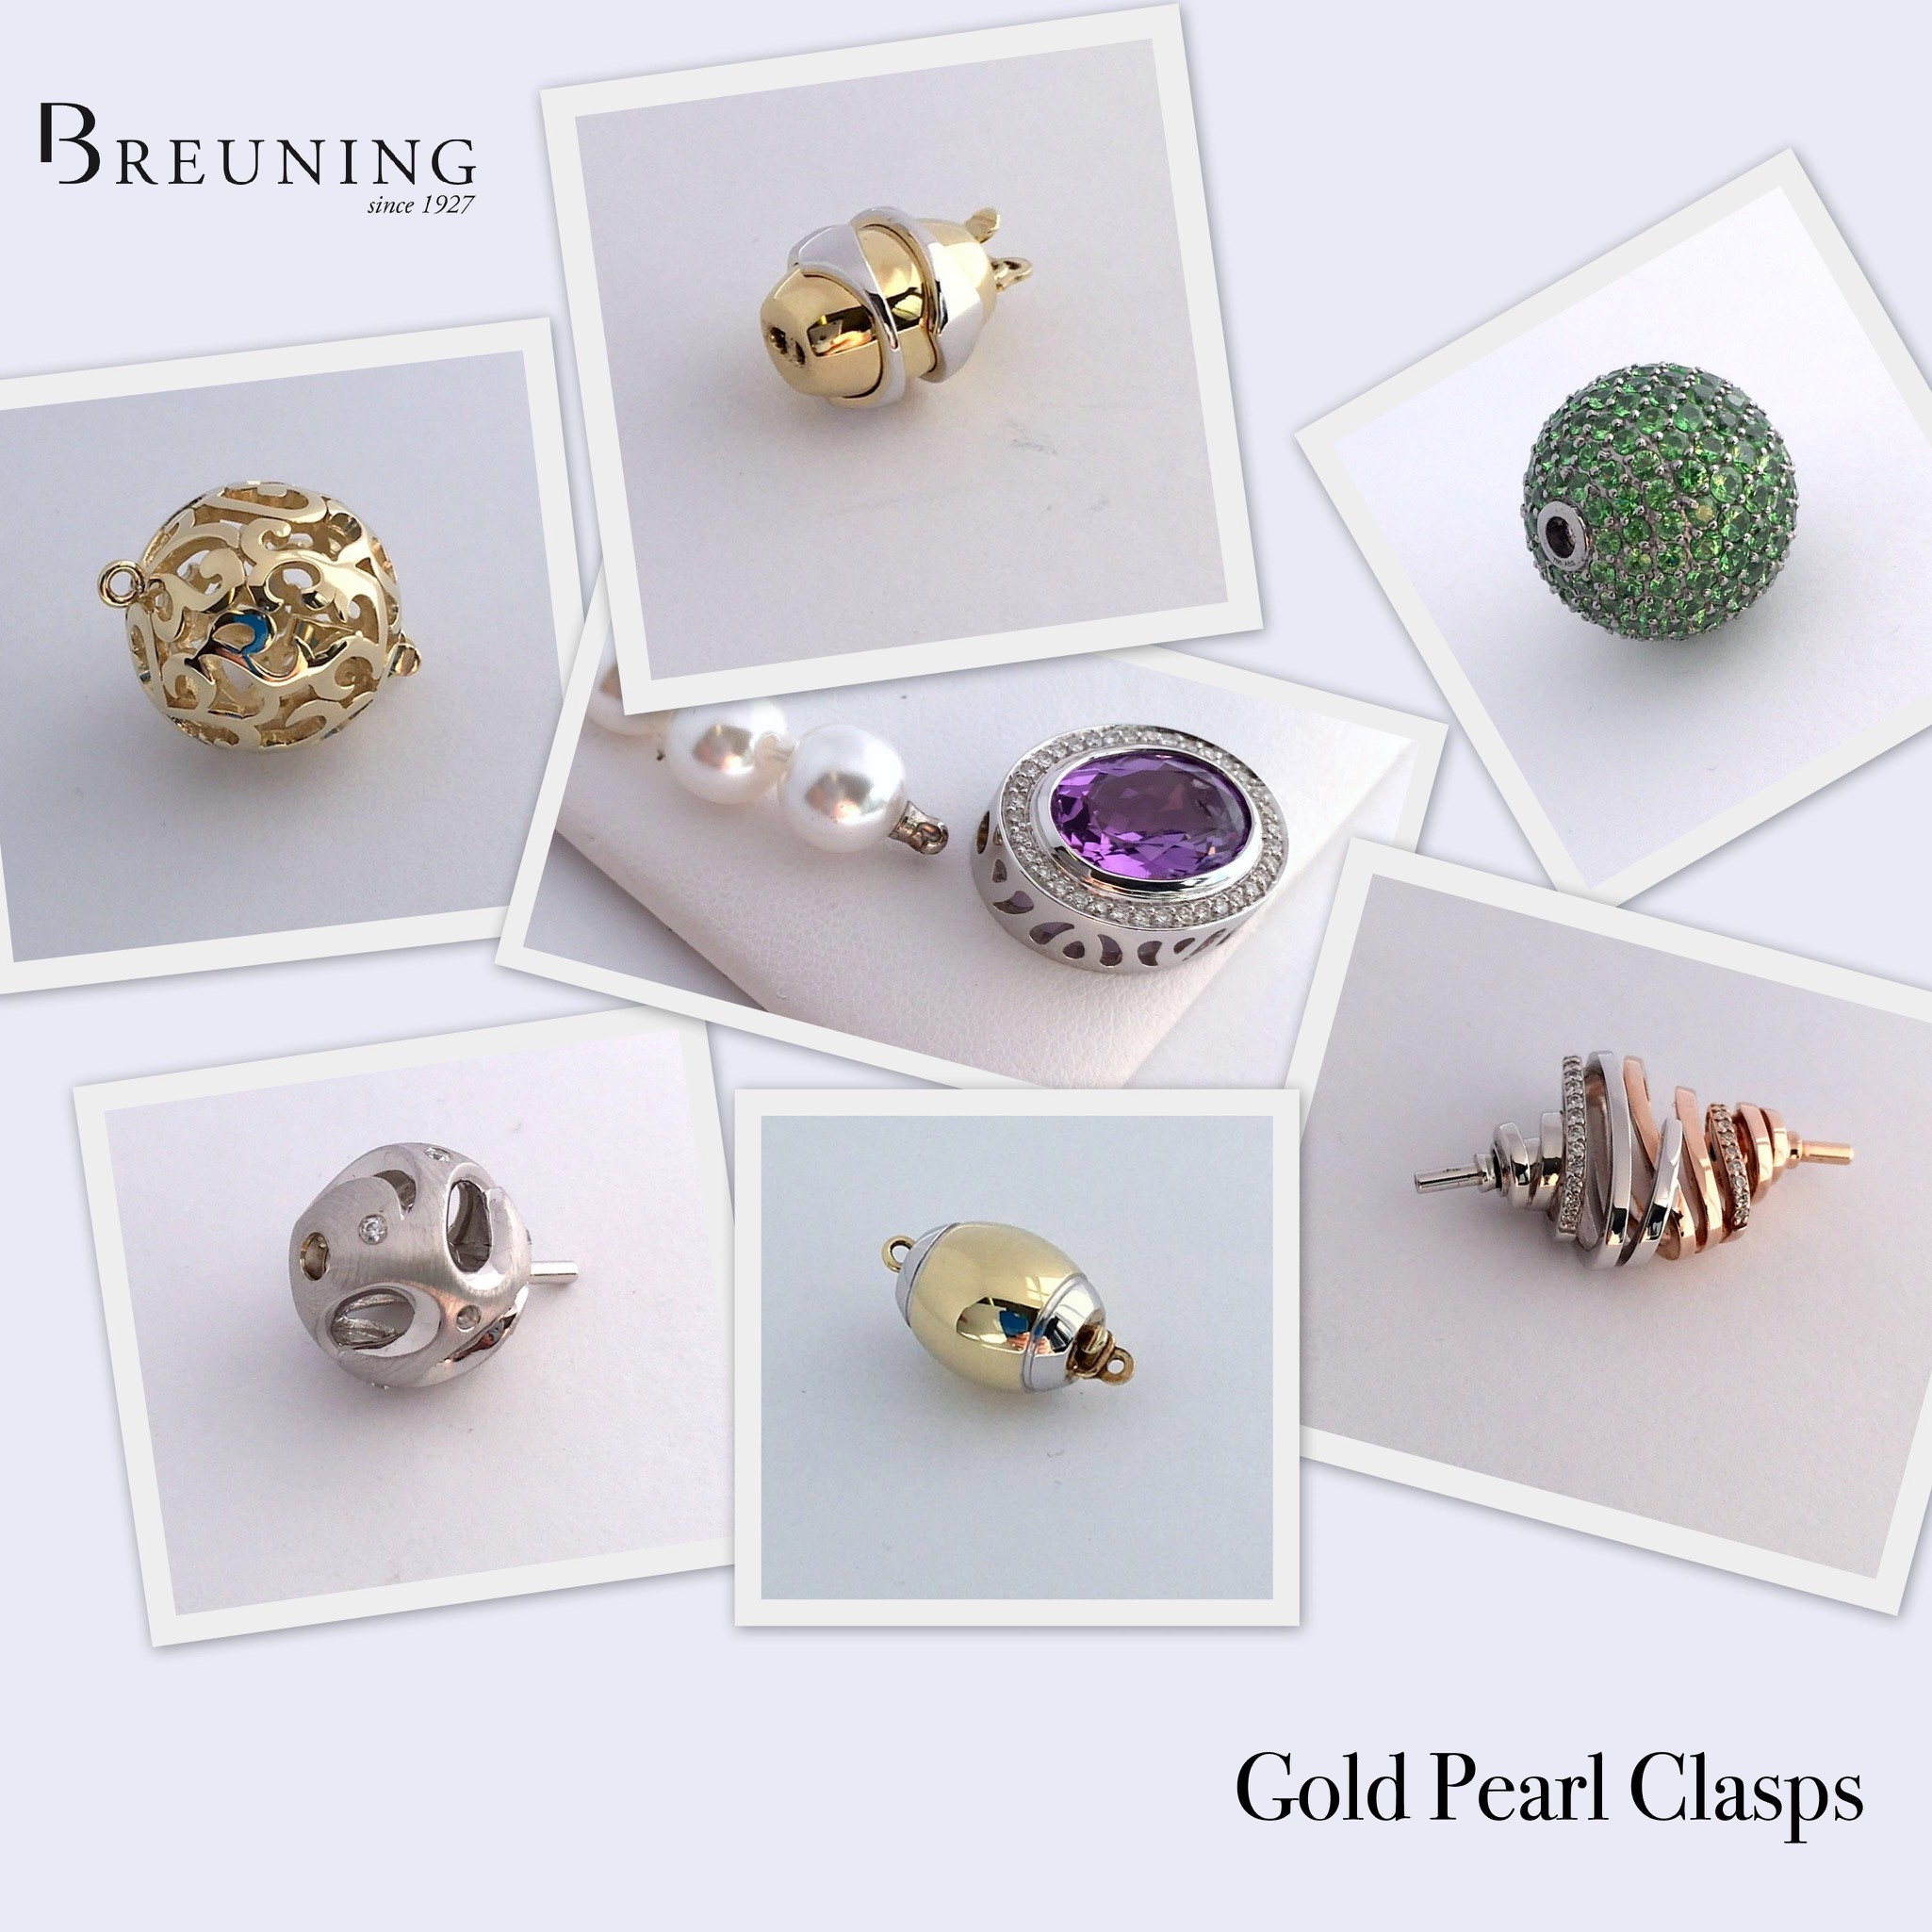 Breuning Pearl Clasps